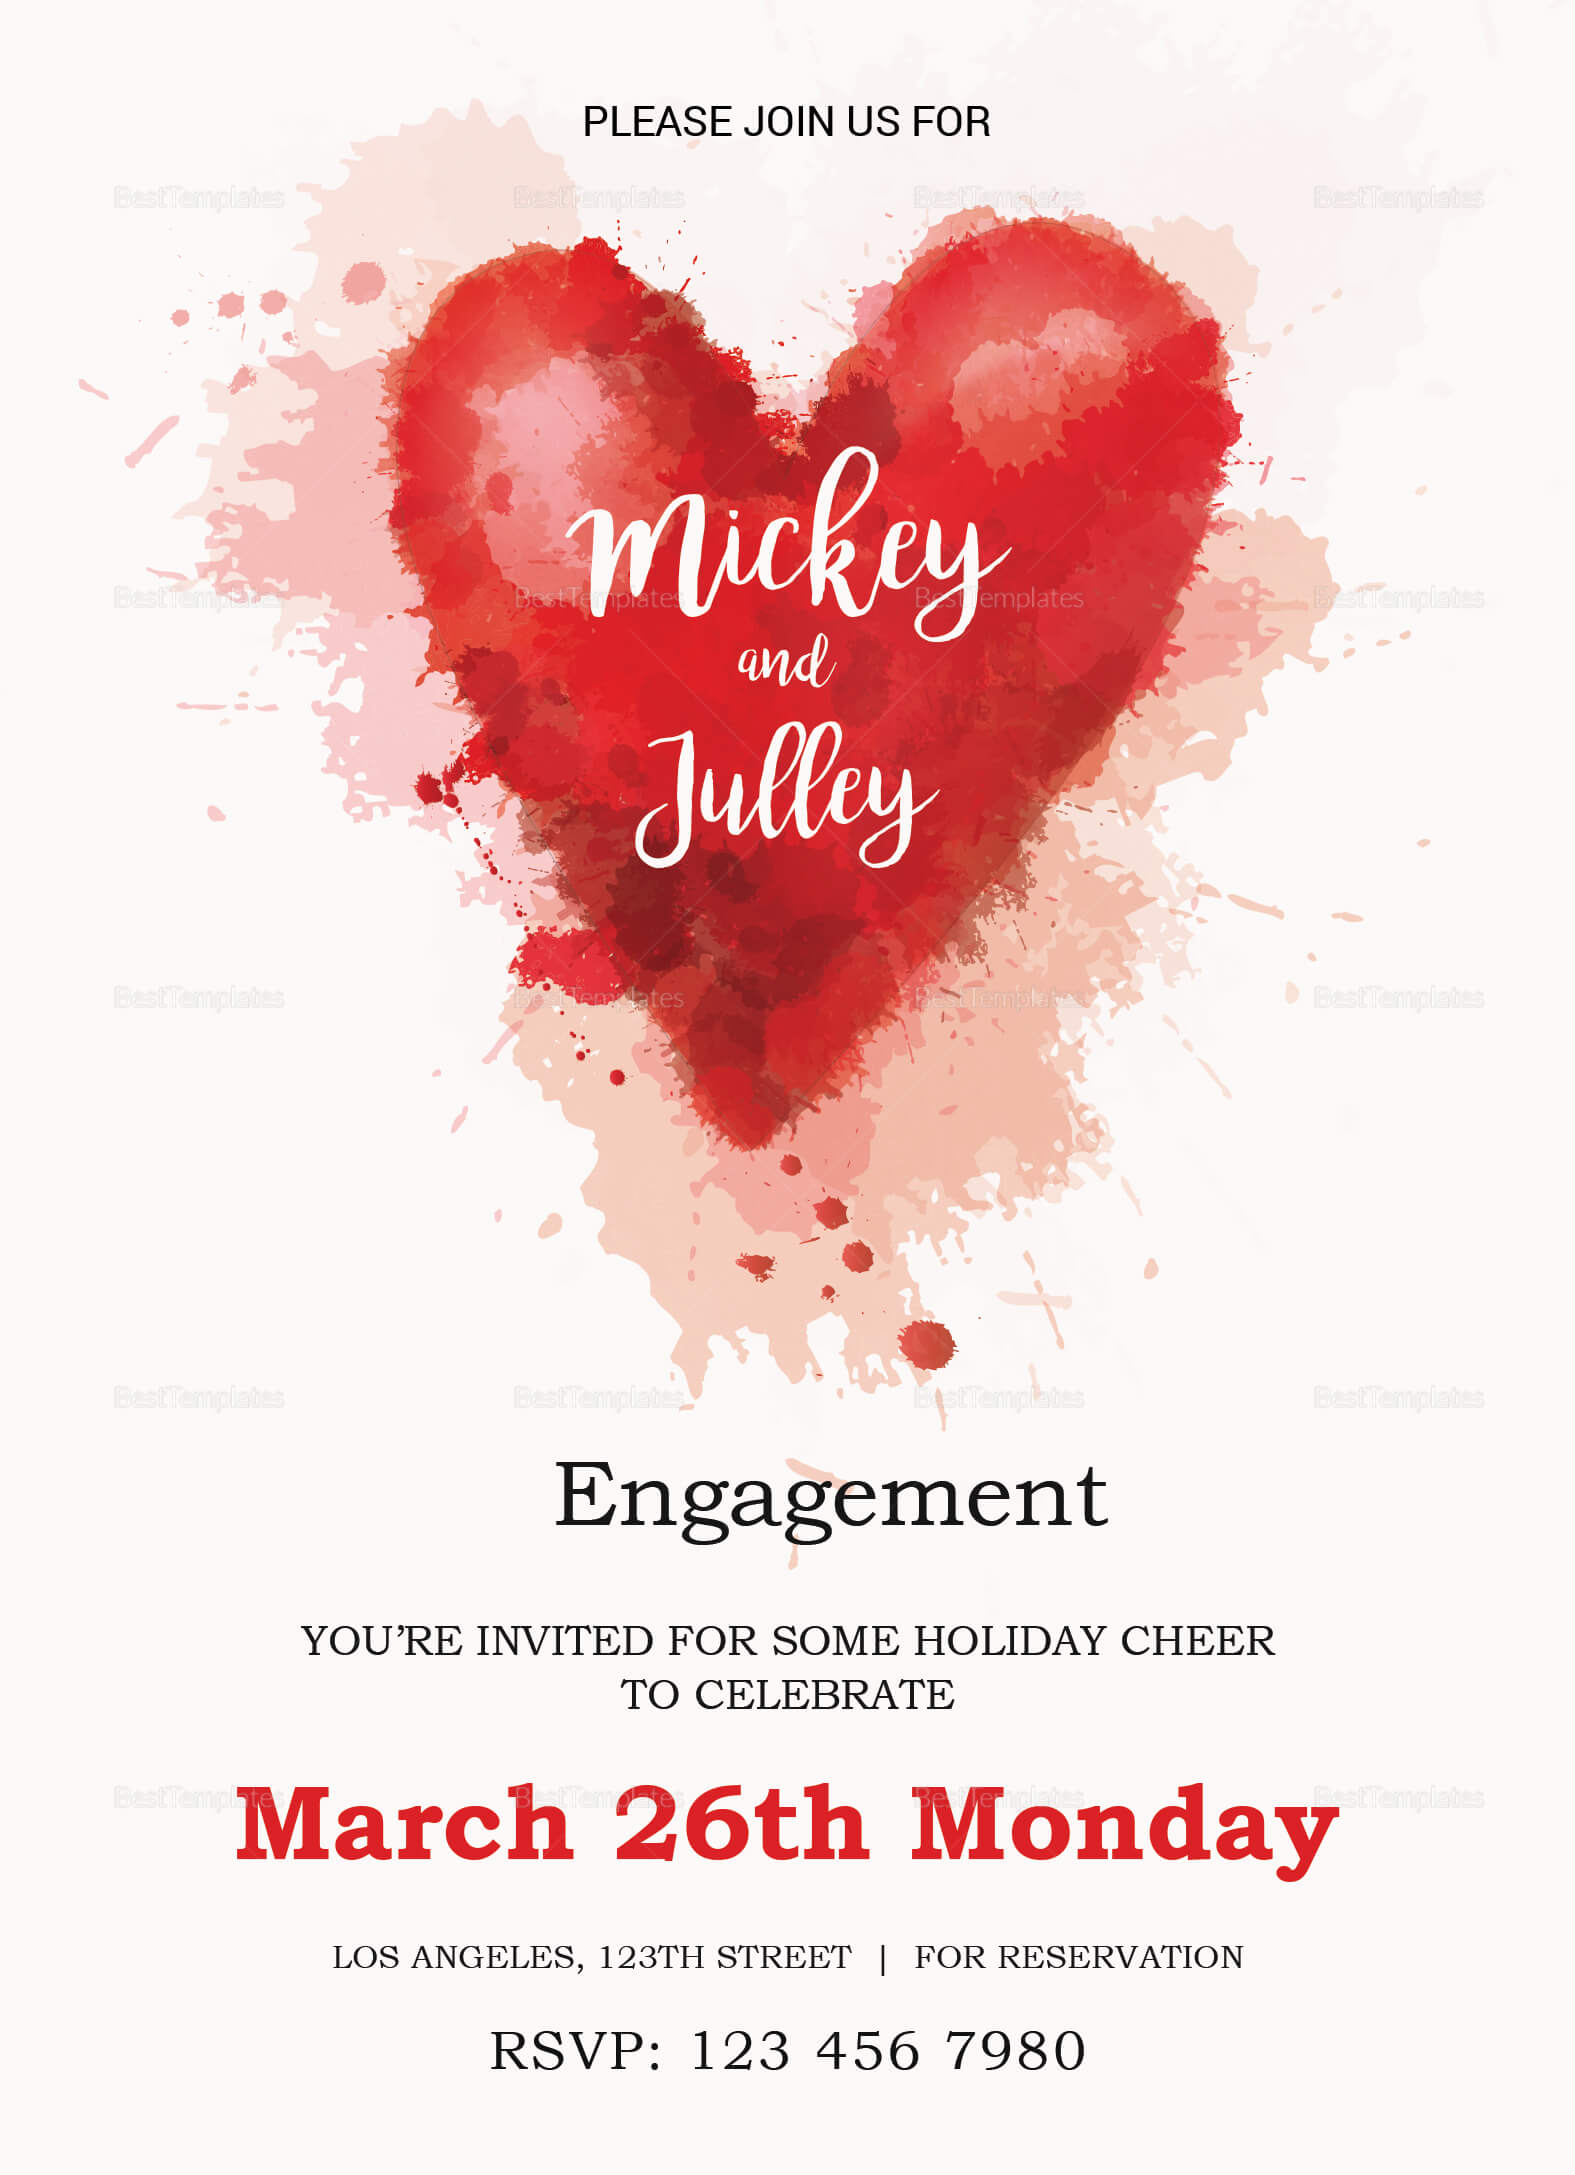 Colorful Engagement Invitation Card Template regarding Engagement Invitation Card Template